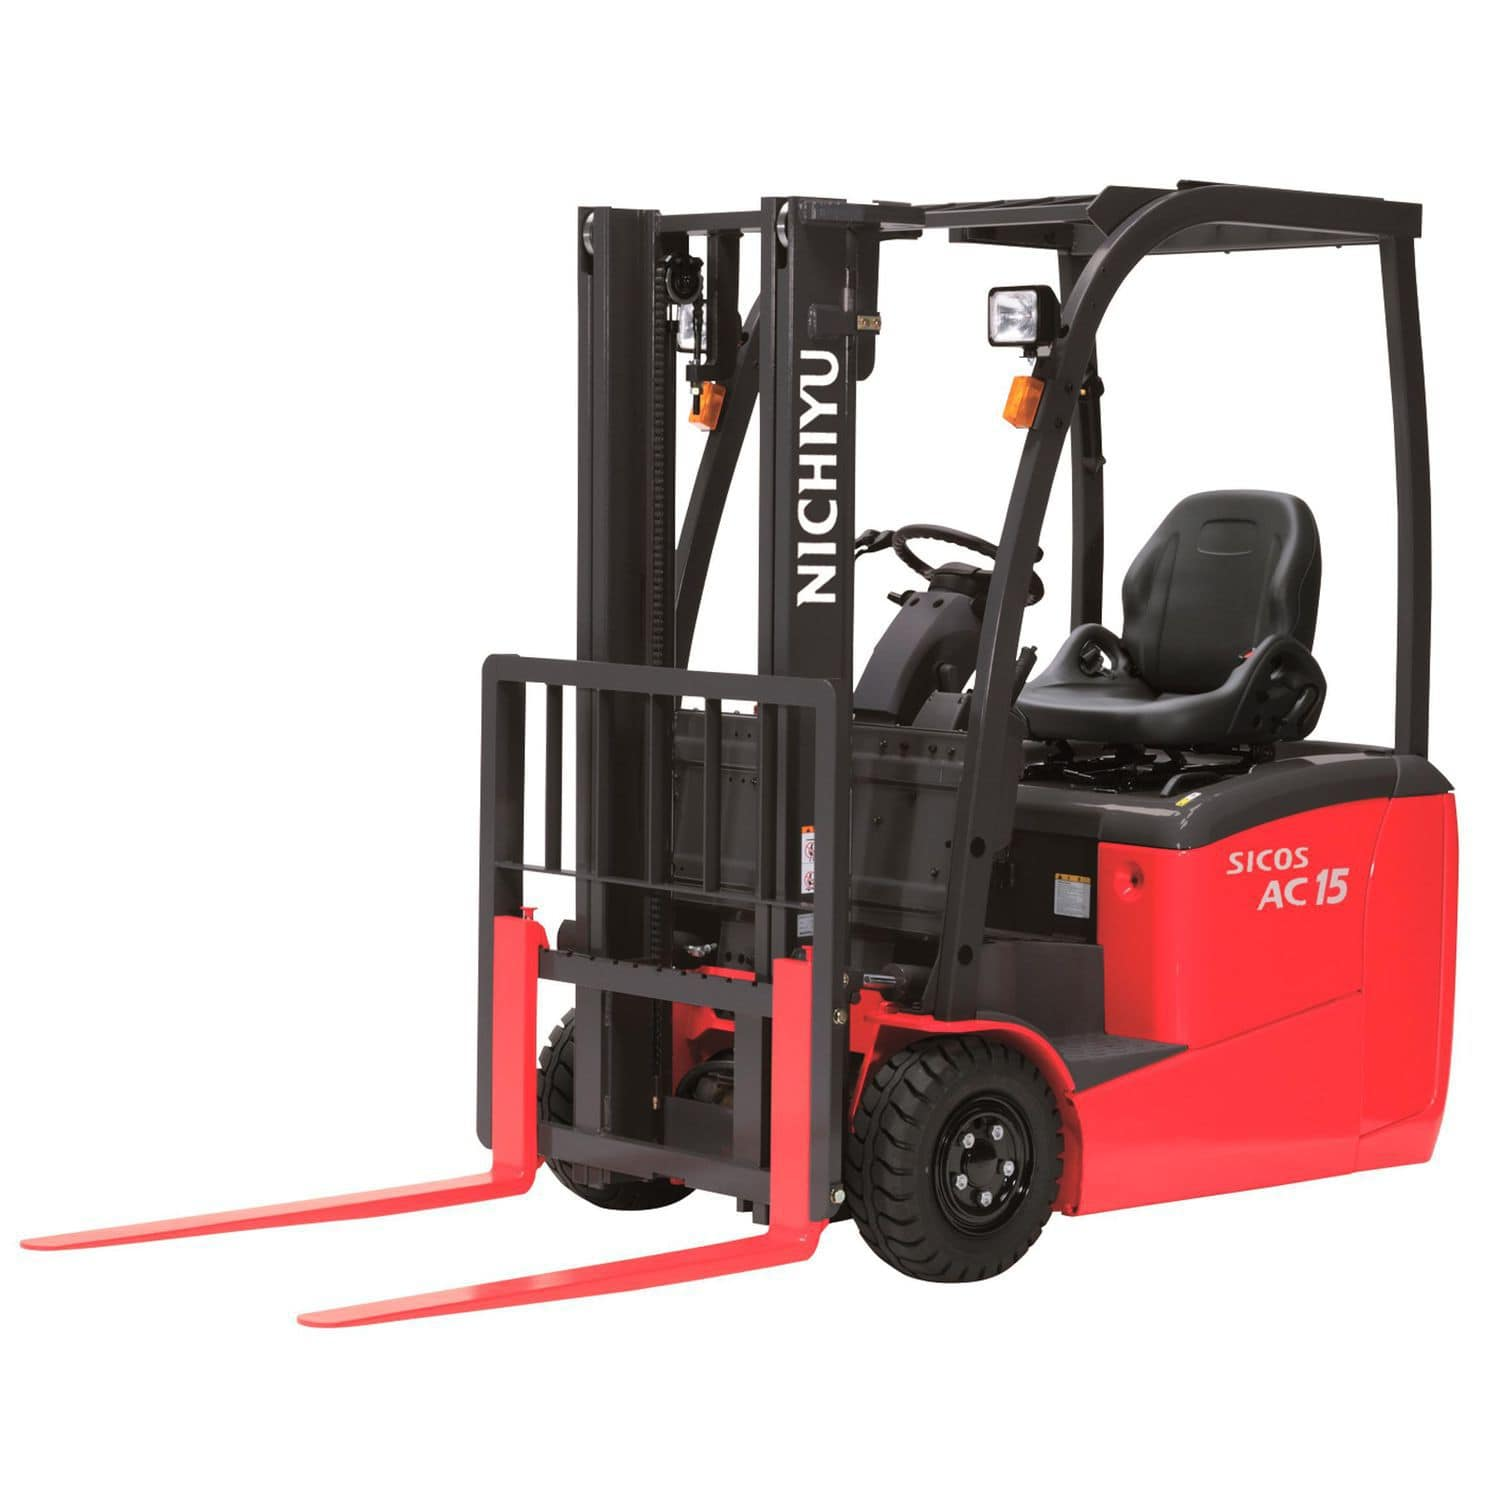 Electric forklift / ride-on / counterbalanced / 3-wheel